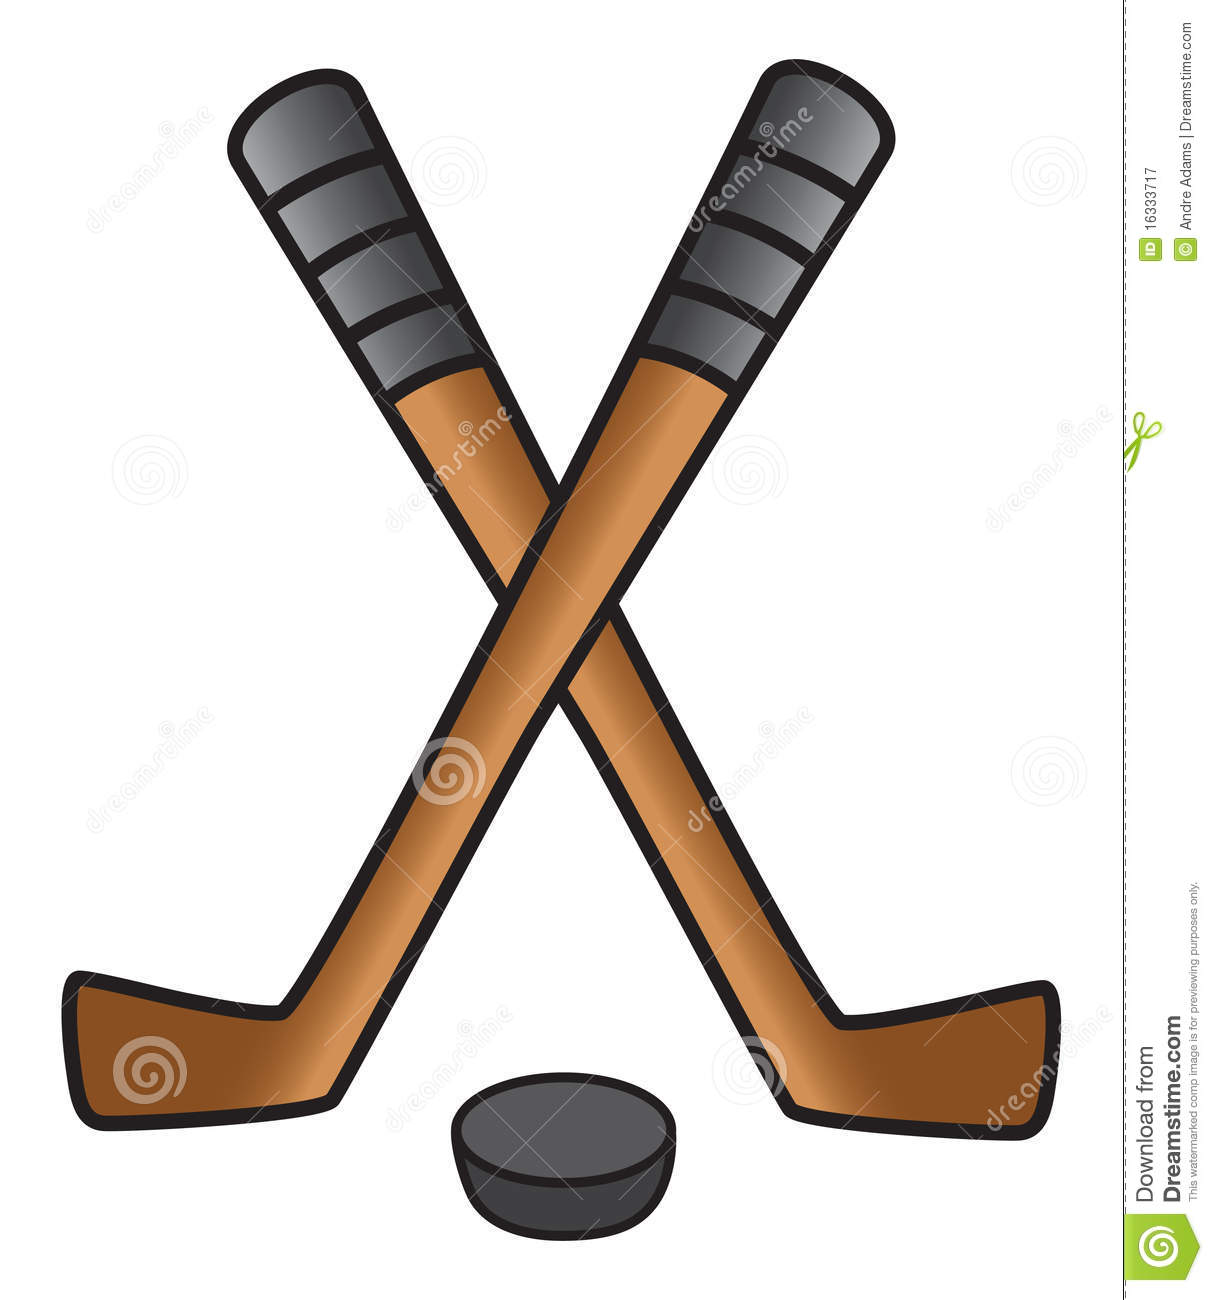 Clip Art Hockey Stick Clip Art puck and hockey stick clipart kid royalty free stock photography image 16333717